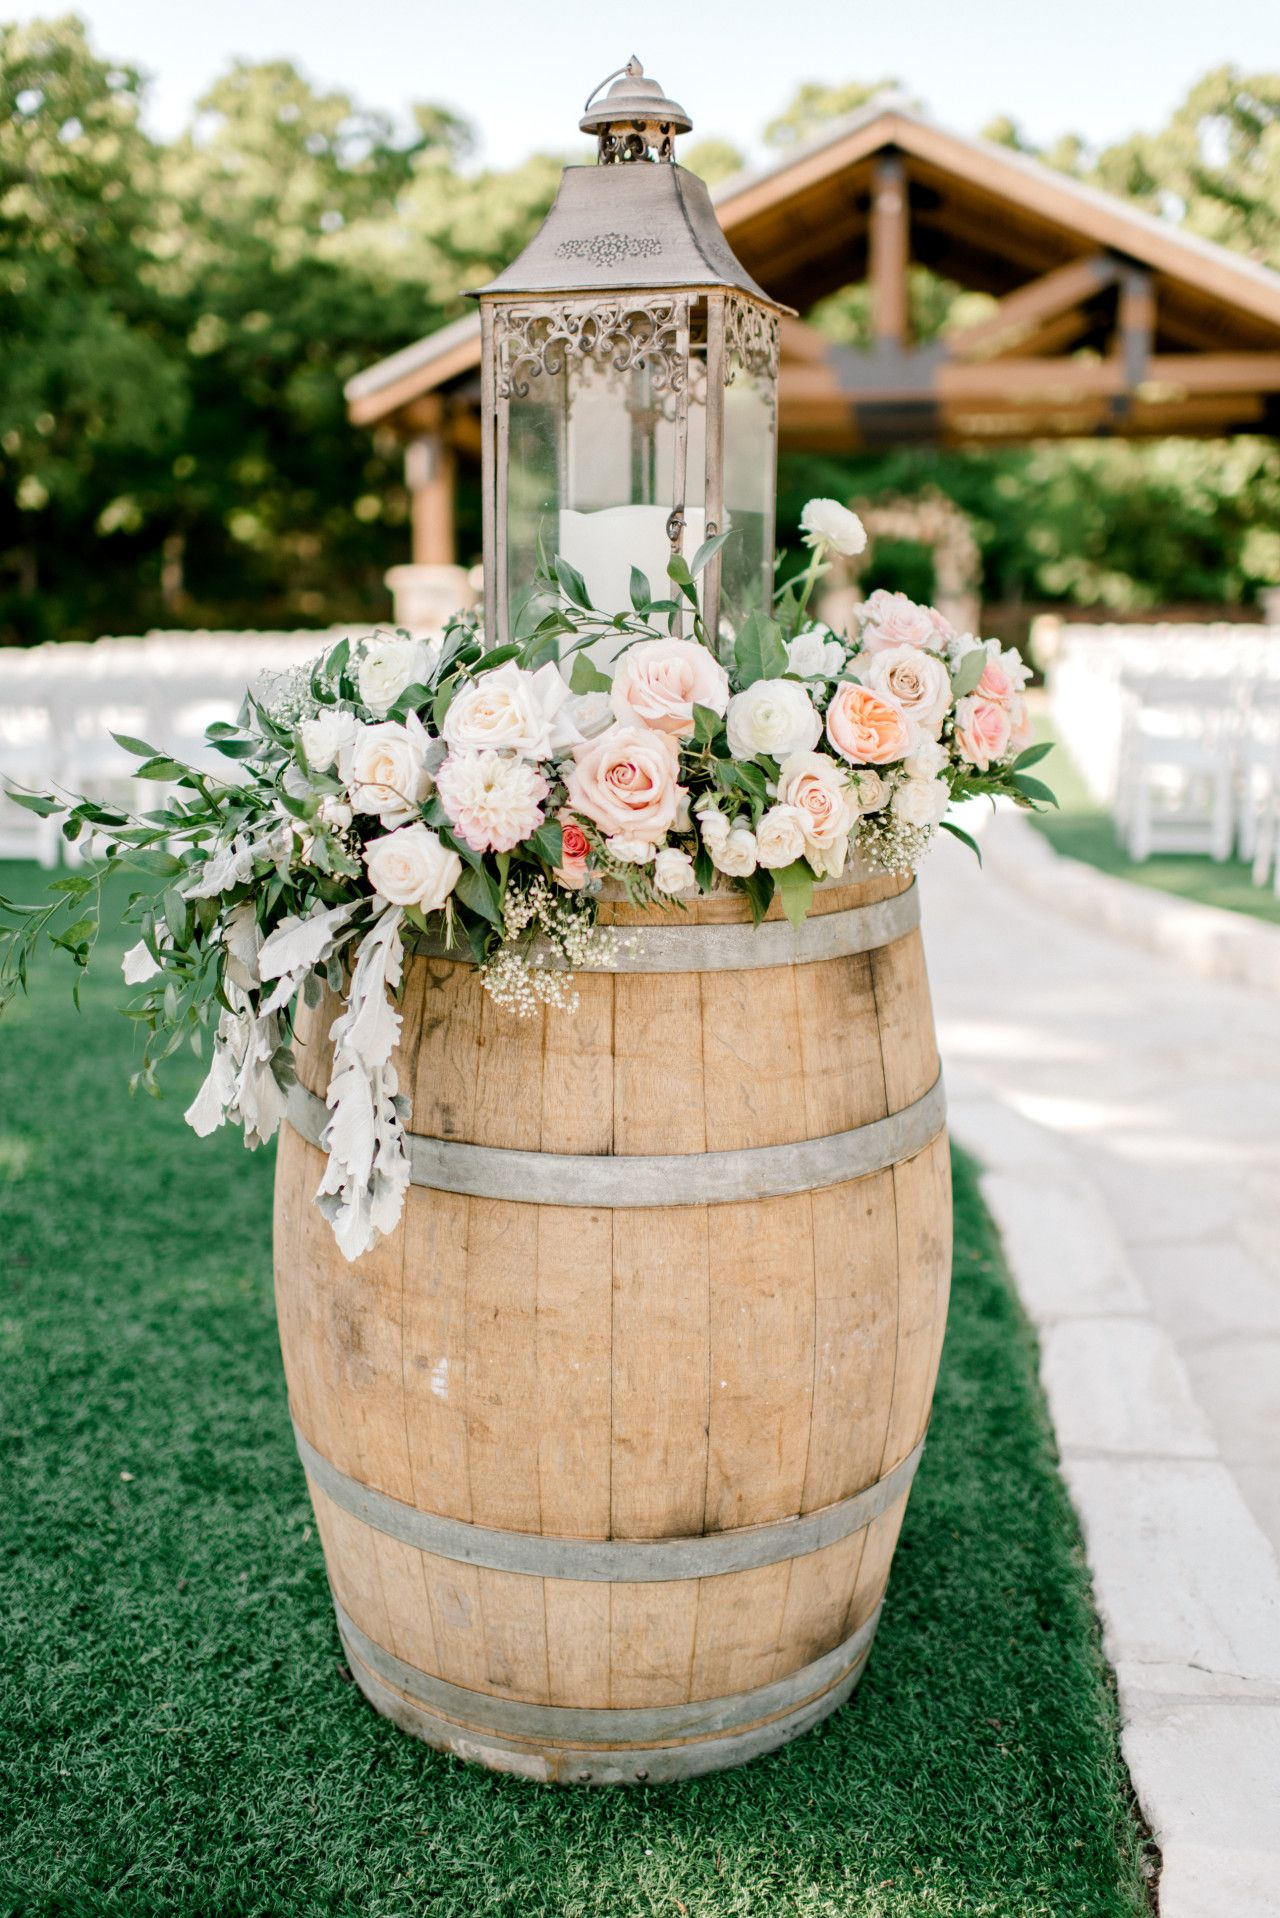 outdoor wedding ceremony decor ideas | natural + elegant